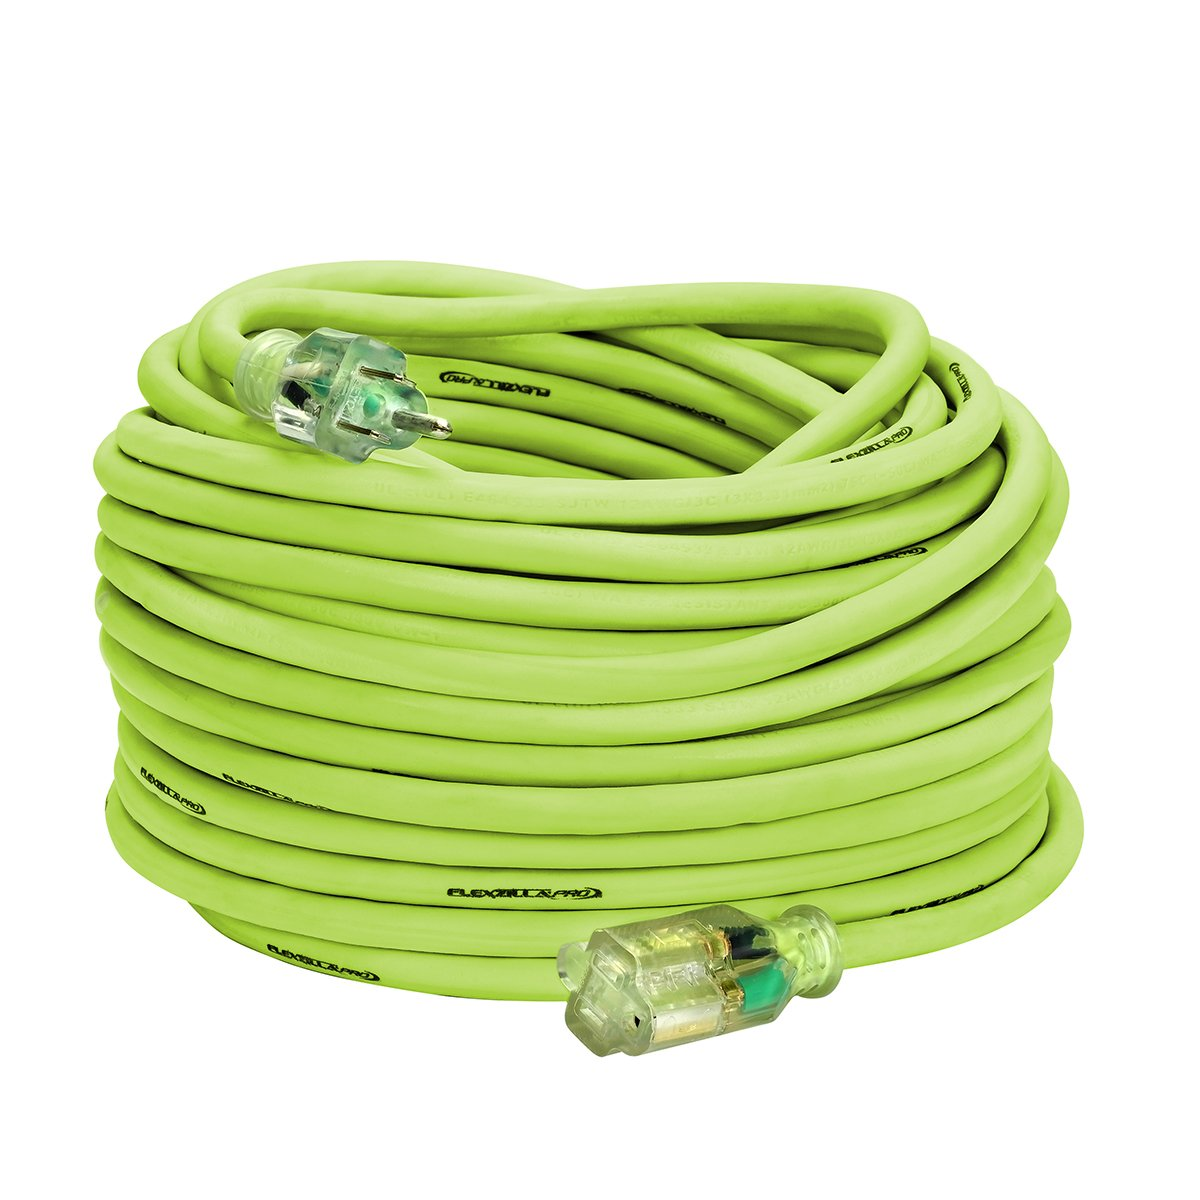 Flexzilla Pro Extension Cord, 12/3 AWG SJTW, 100 ft, Lighted Plug, Indoor/Outdoor, ZillaGreen - 721-123100FZL5F